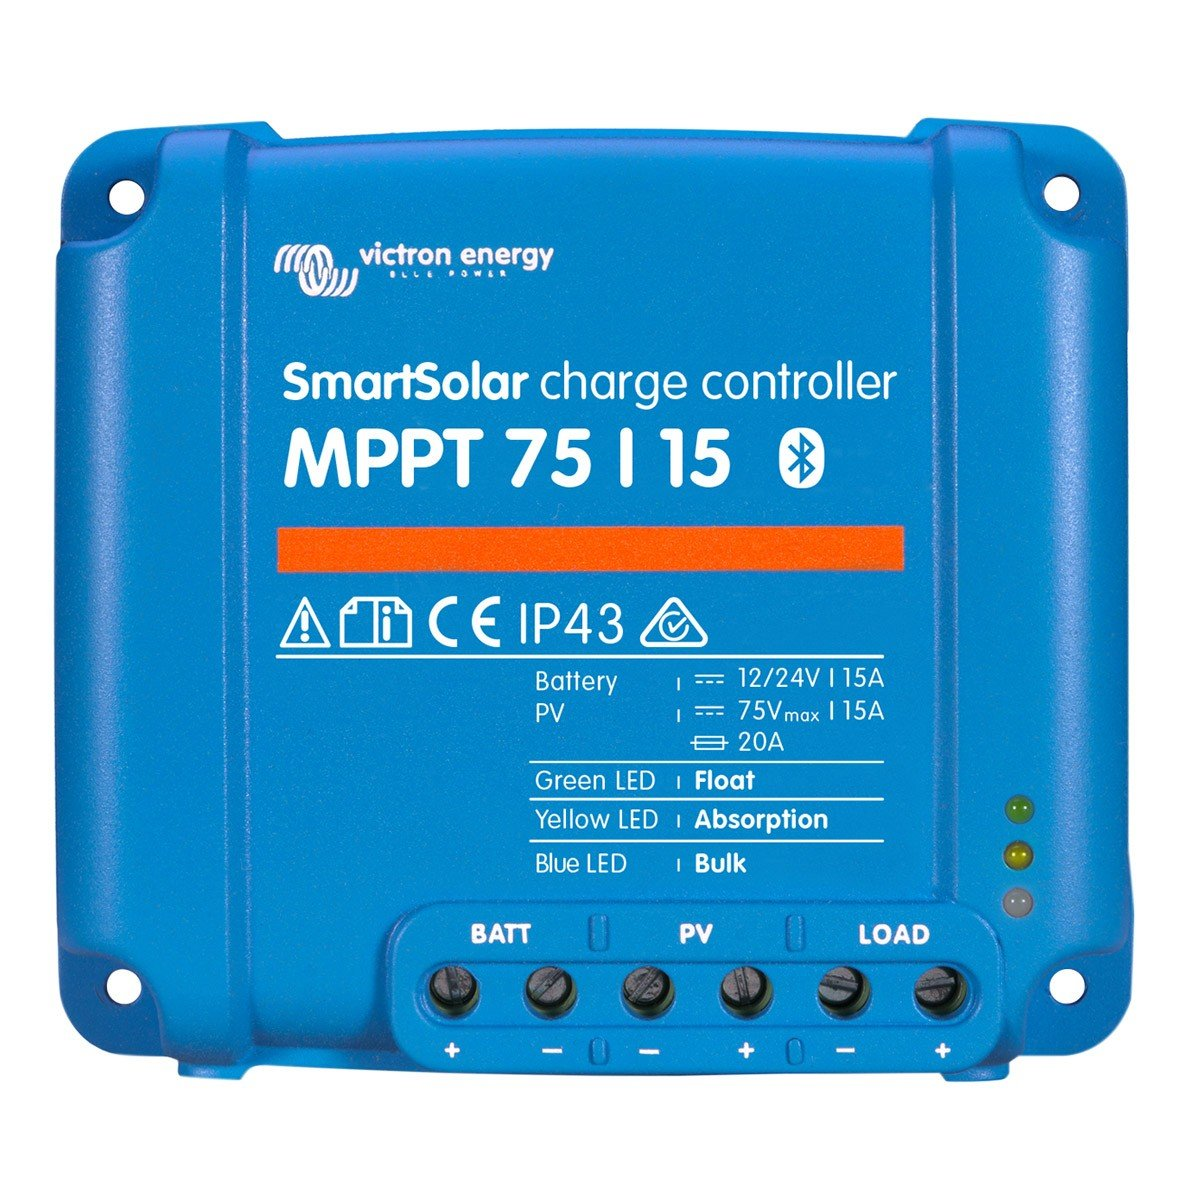 Victron SmartSolar Charge Controller with Built-In Bluetooth – MPPT 75/15 – 75 Volts, 15 Amps by Victron (Image #3)